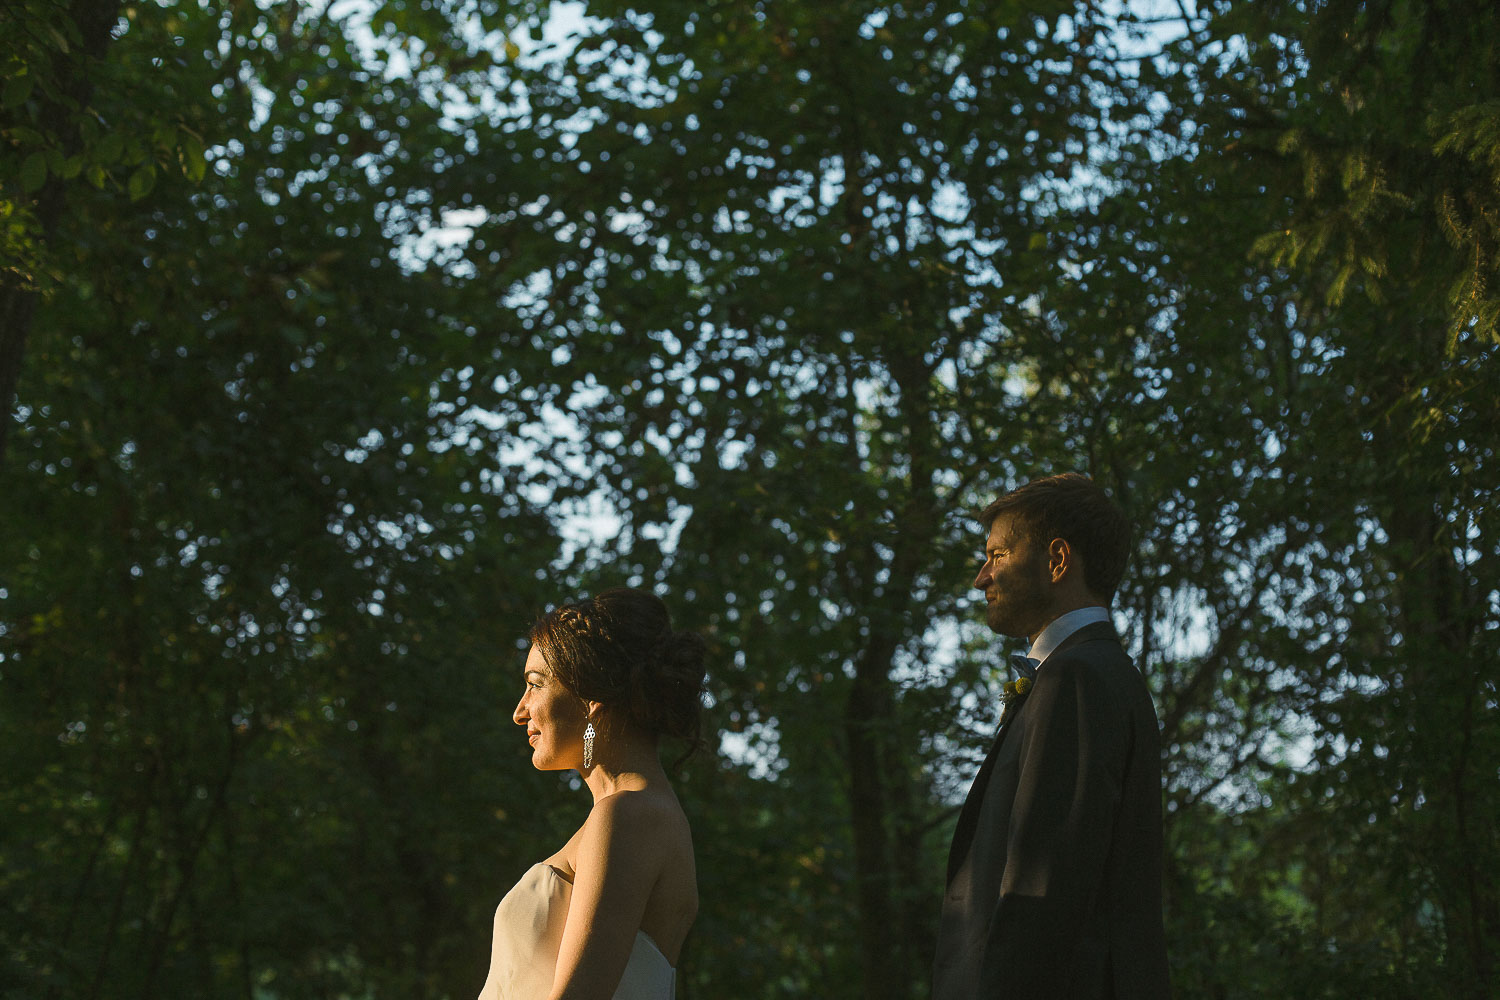 sunset-couple-portrait.jpg